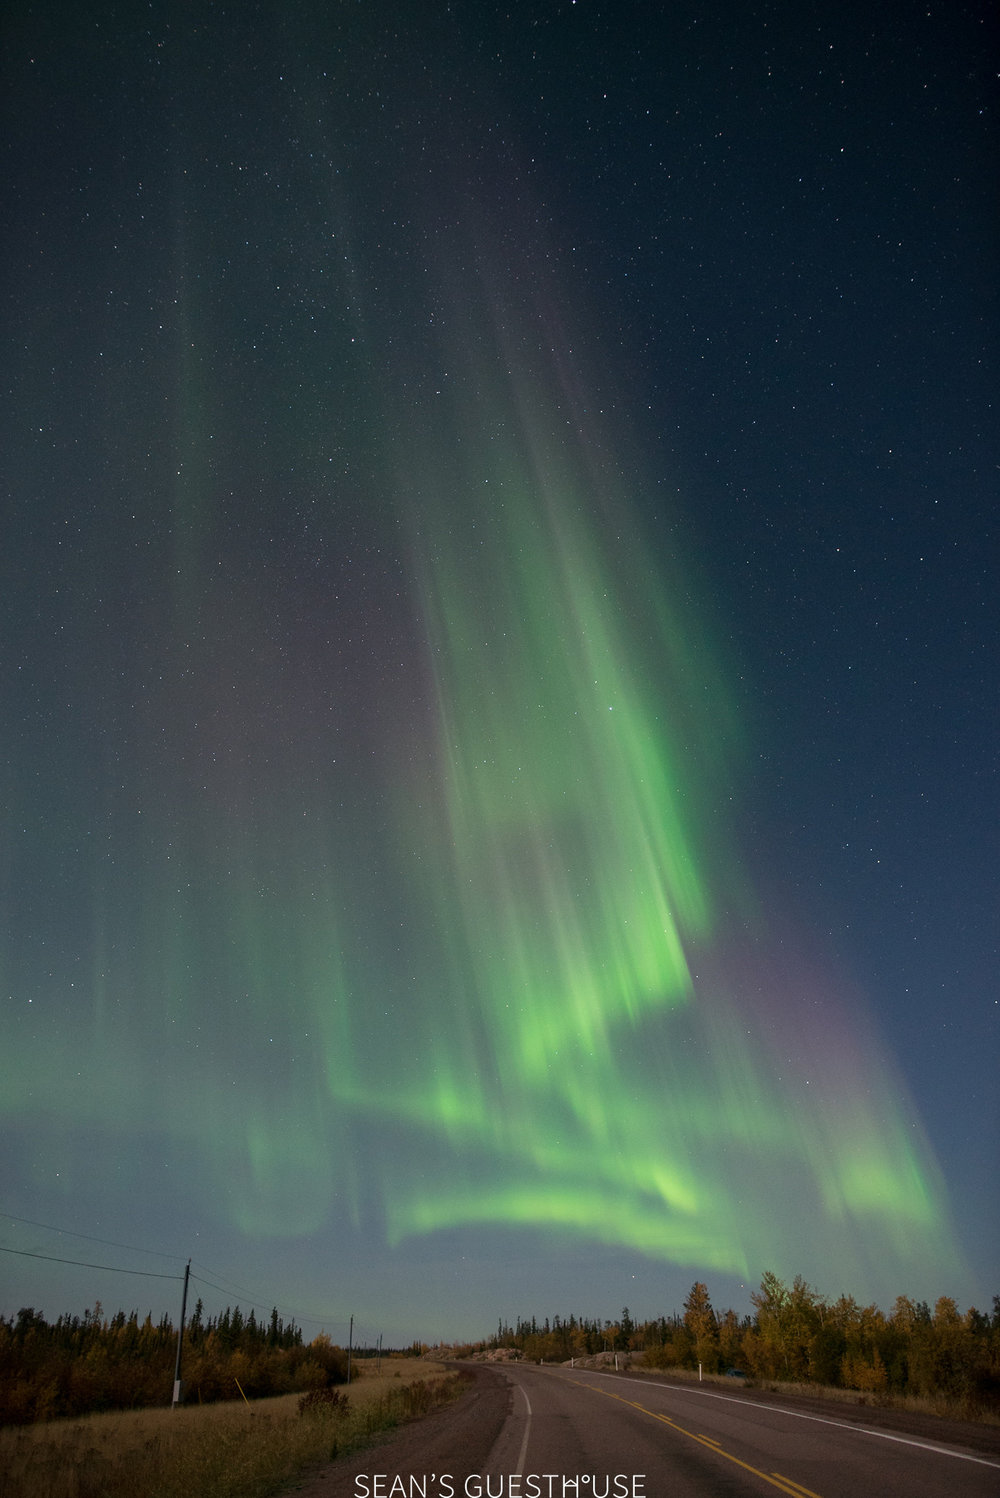 Sean's Guesthouse - Best Place to See the Northern Lights - 3.jpg